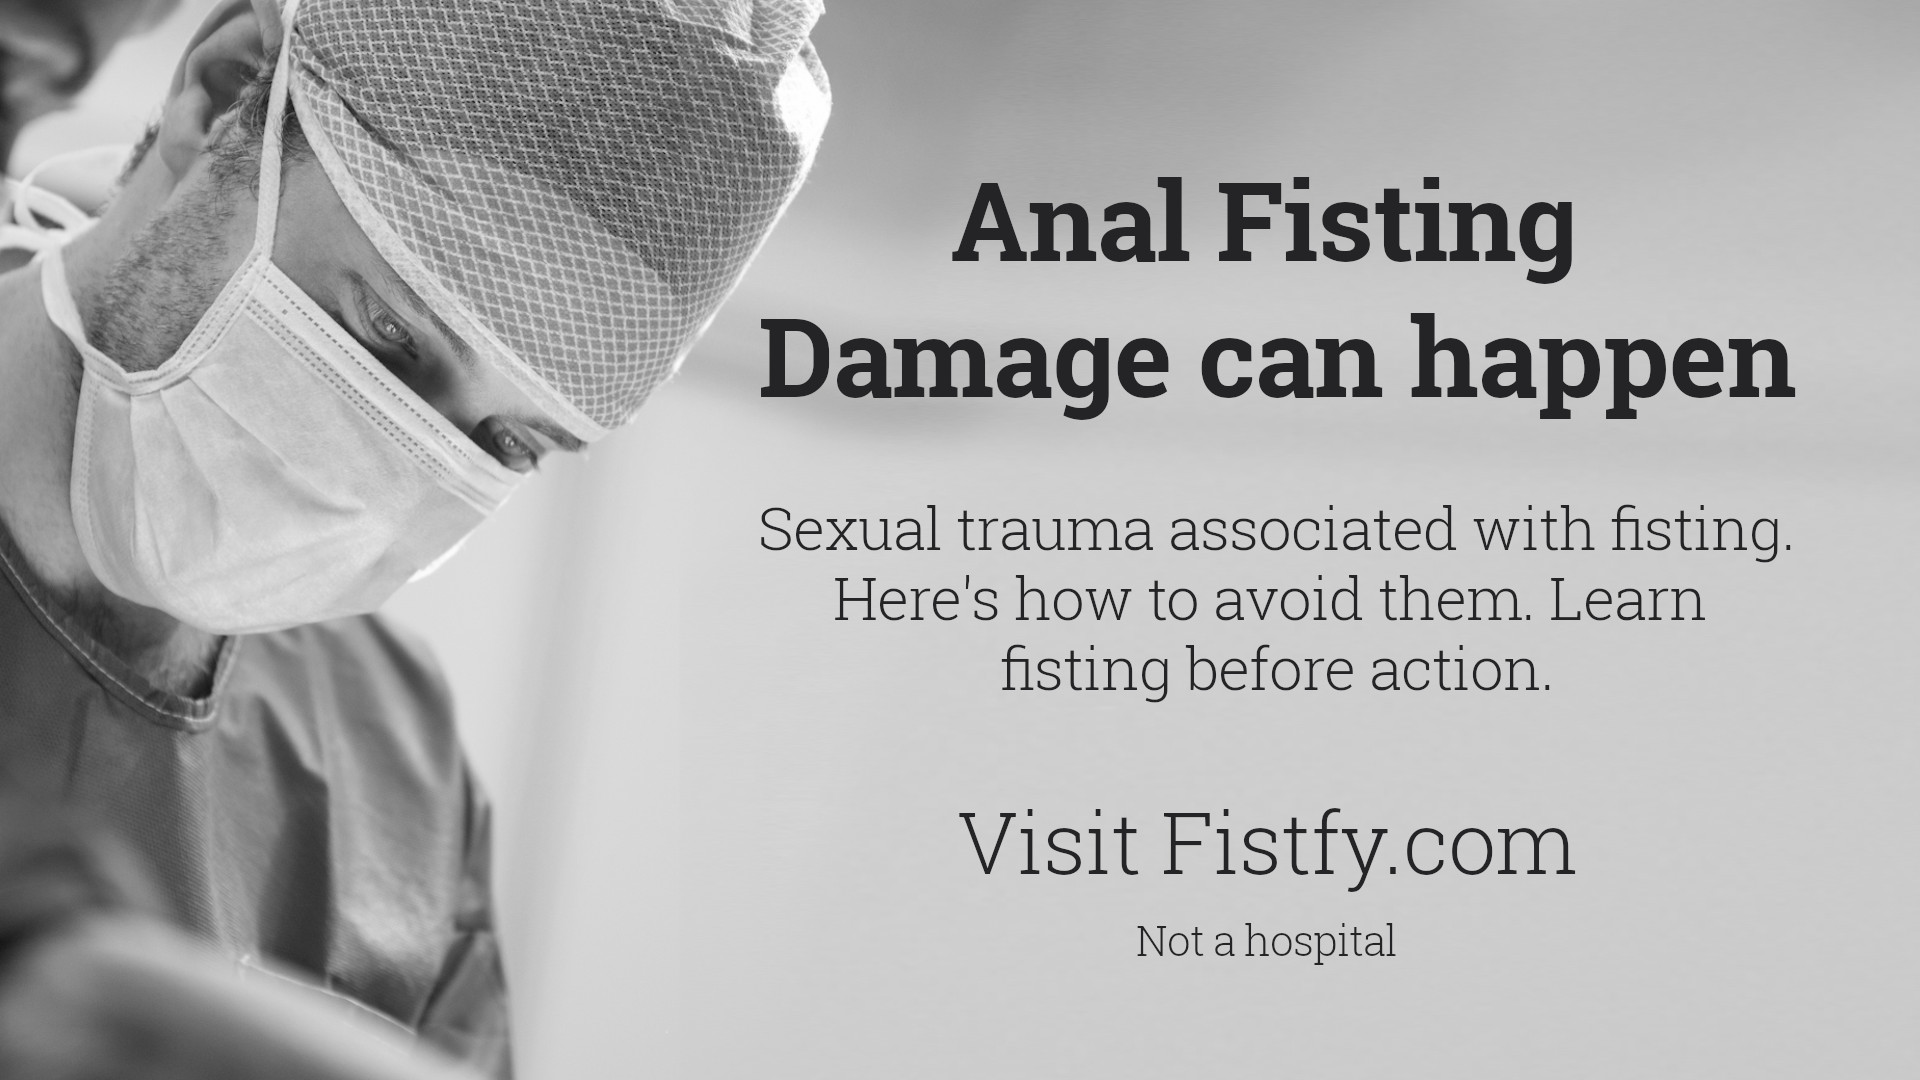 Anal Fisting Damage can happen. Sexual trauma associated with fisting – The Ugly Truth about Anal Fisting